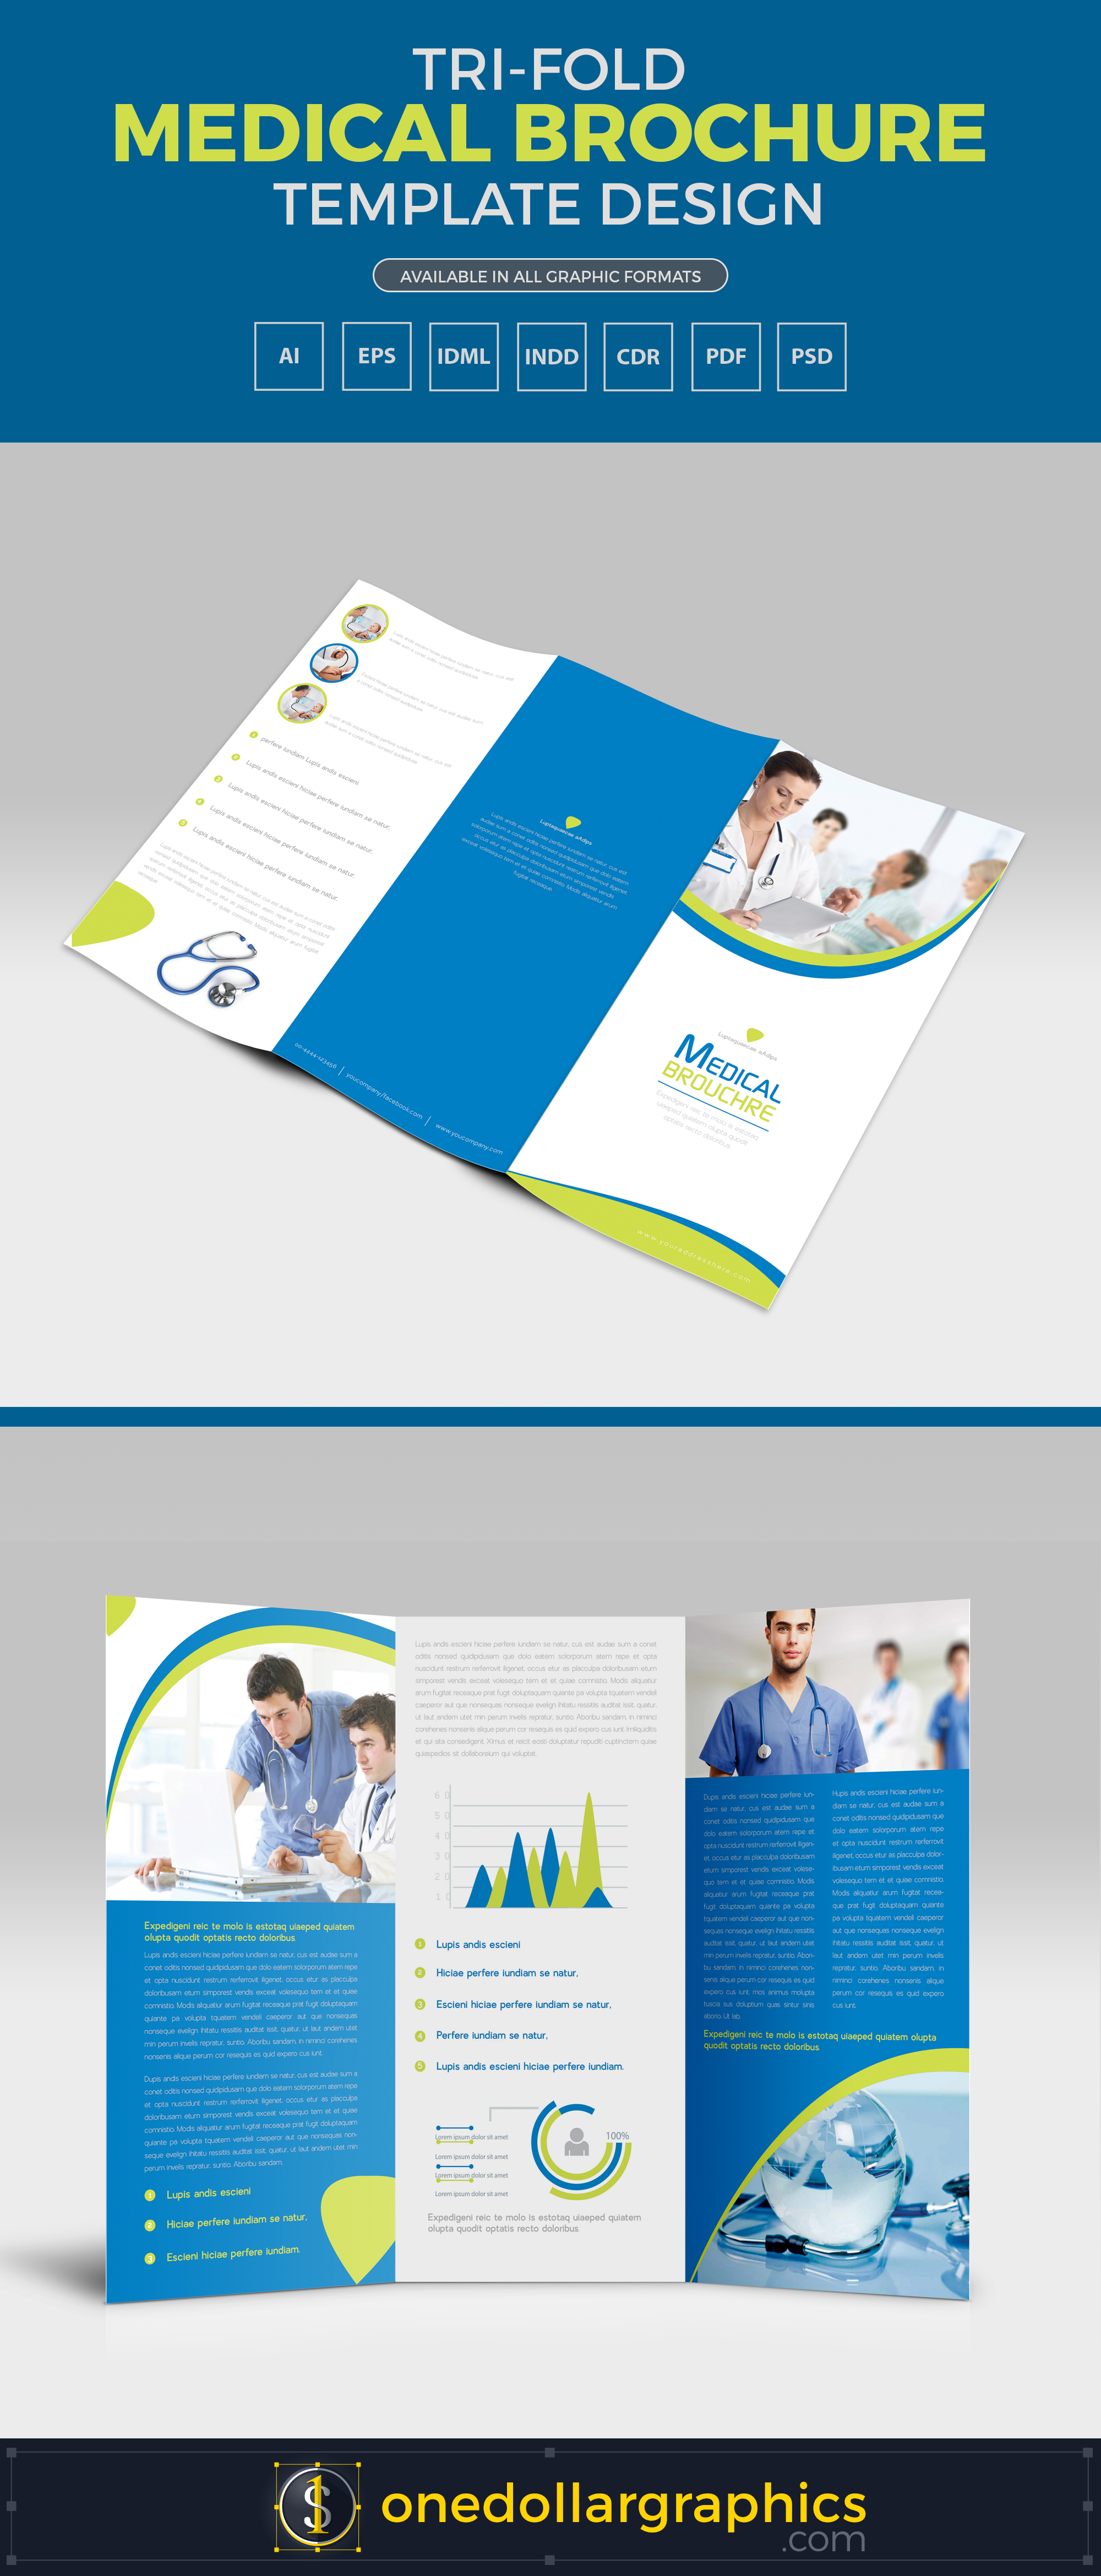 TriFold Medical Brochure Template Design In Ai EPS PDF CDR - Ai brochure template